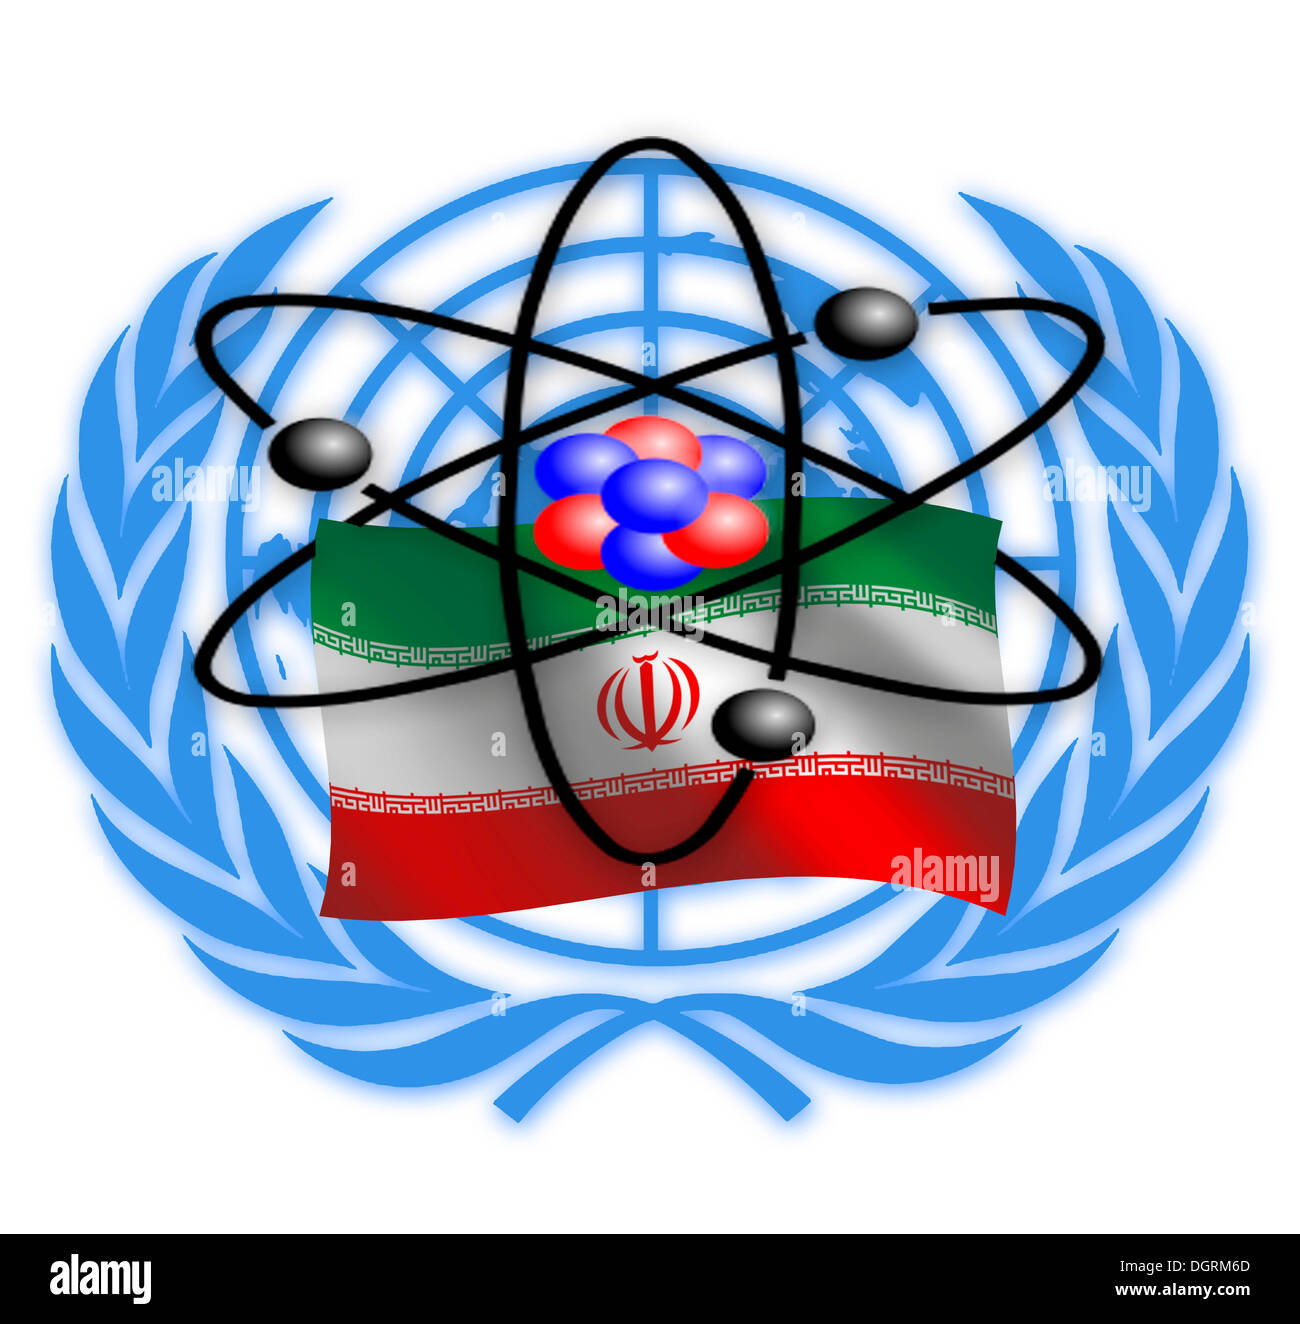 Symbolic image, nuclear dispute between Iran and the United Nations, international community, illustration - Stock Image